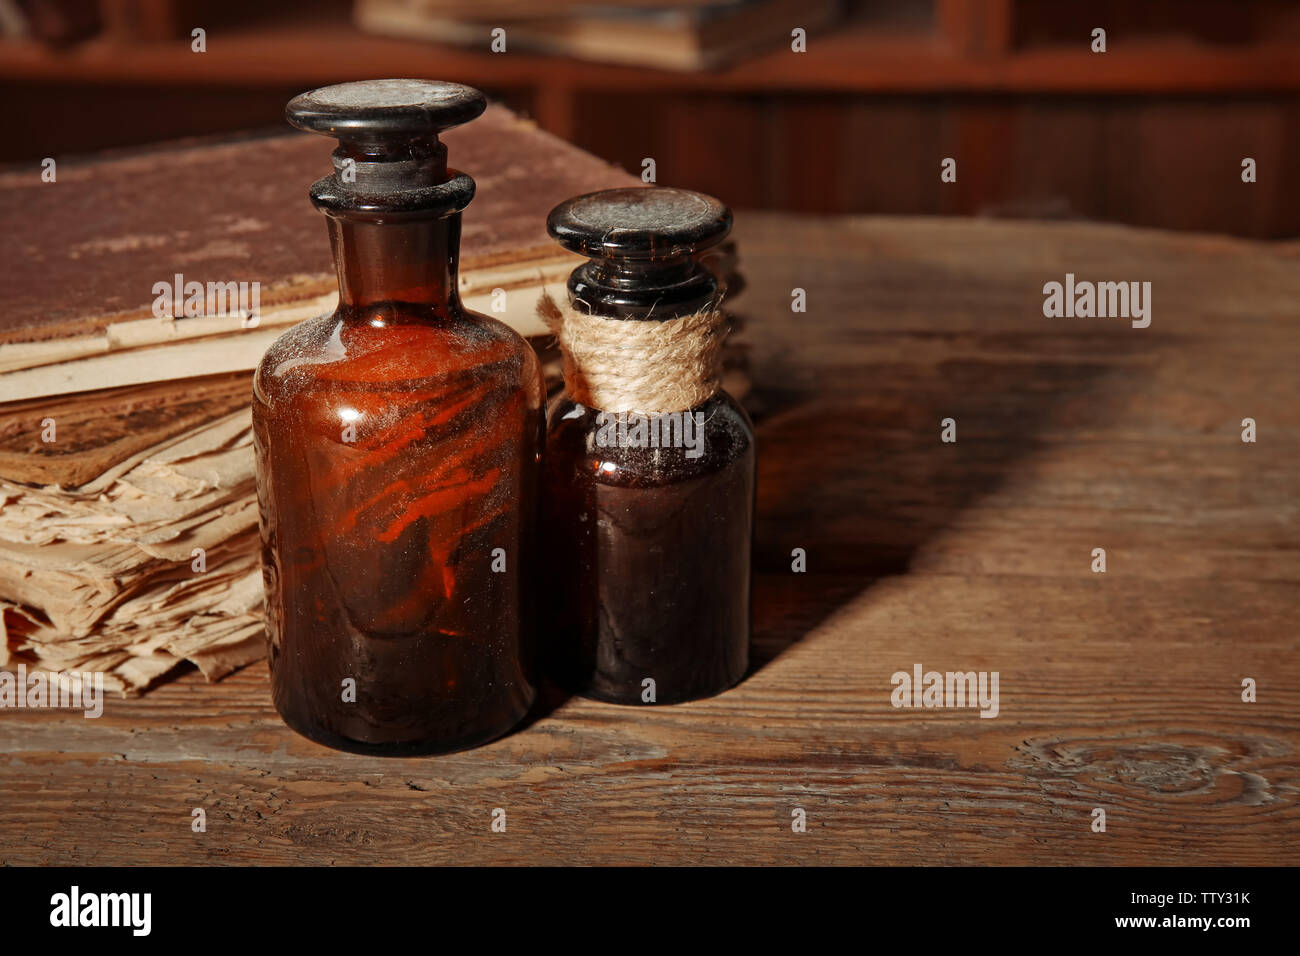 Vintage glass bottles with old books on wooden table, closeup - Stock Image